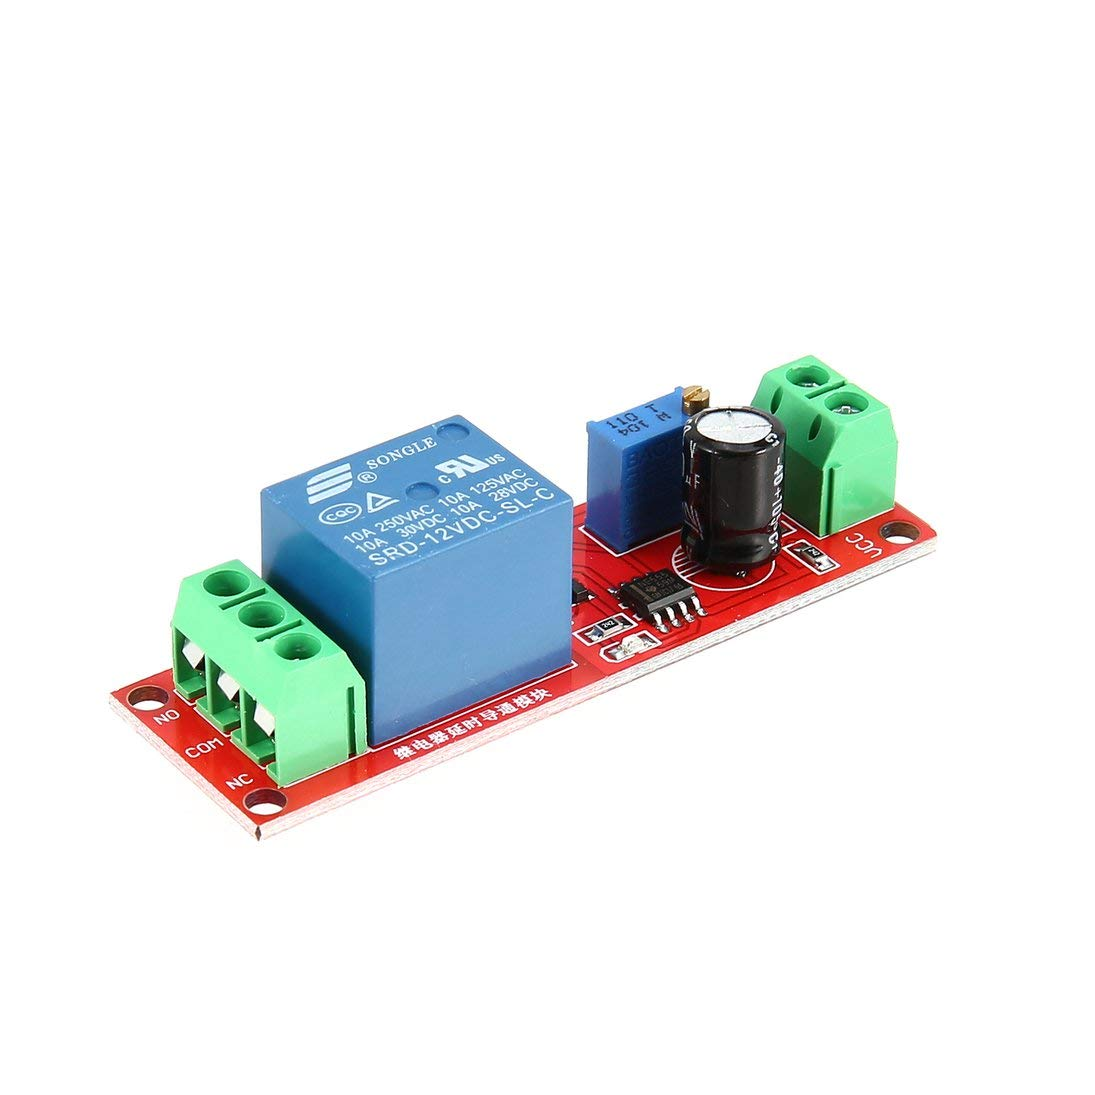 Baynne DC 12V NE555 Monostable Delay Relay Circuit Conduction Module Trigger Switch Timer Adjustable Time Shield Electronics Arduino by Baynne (Image #4)